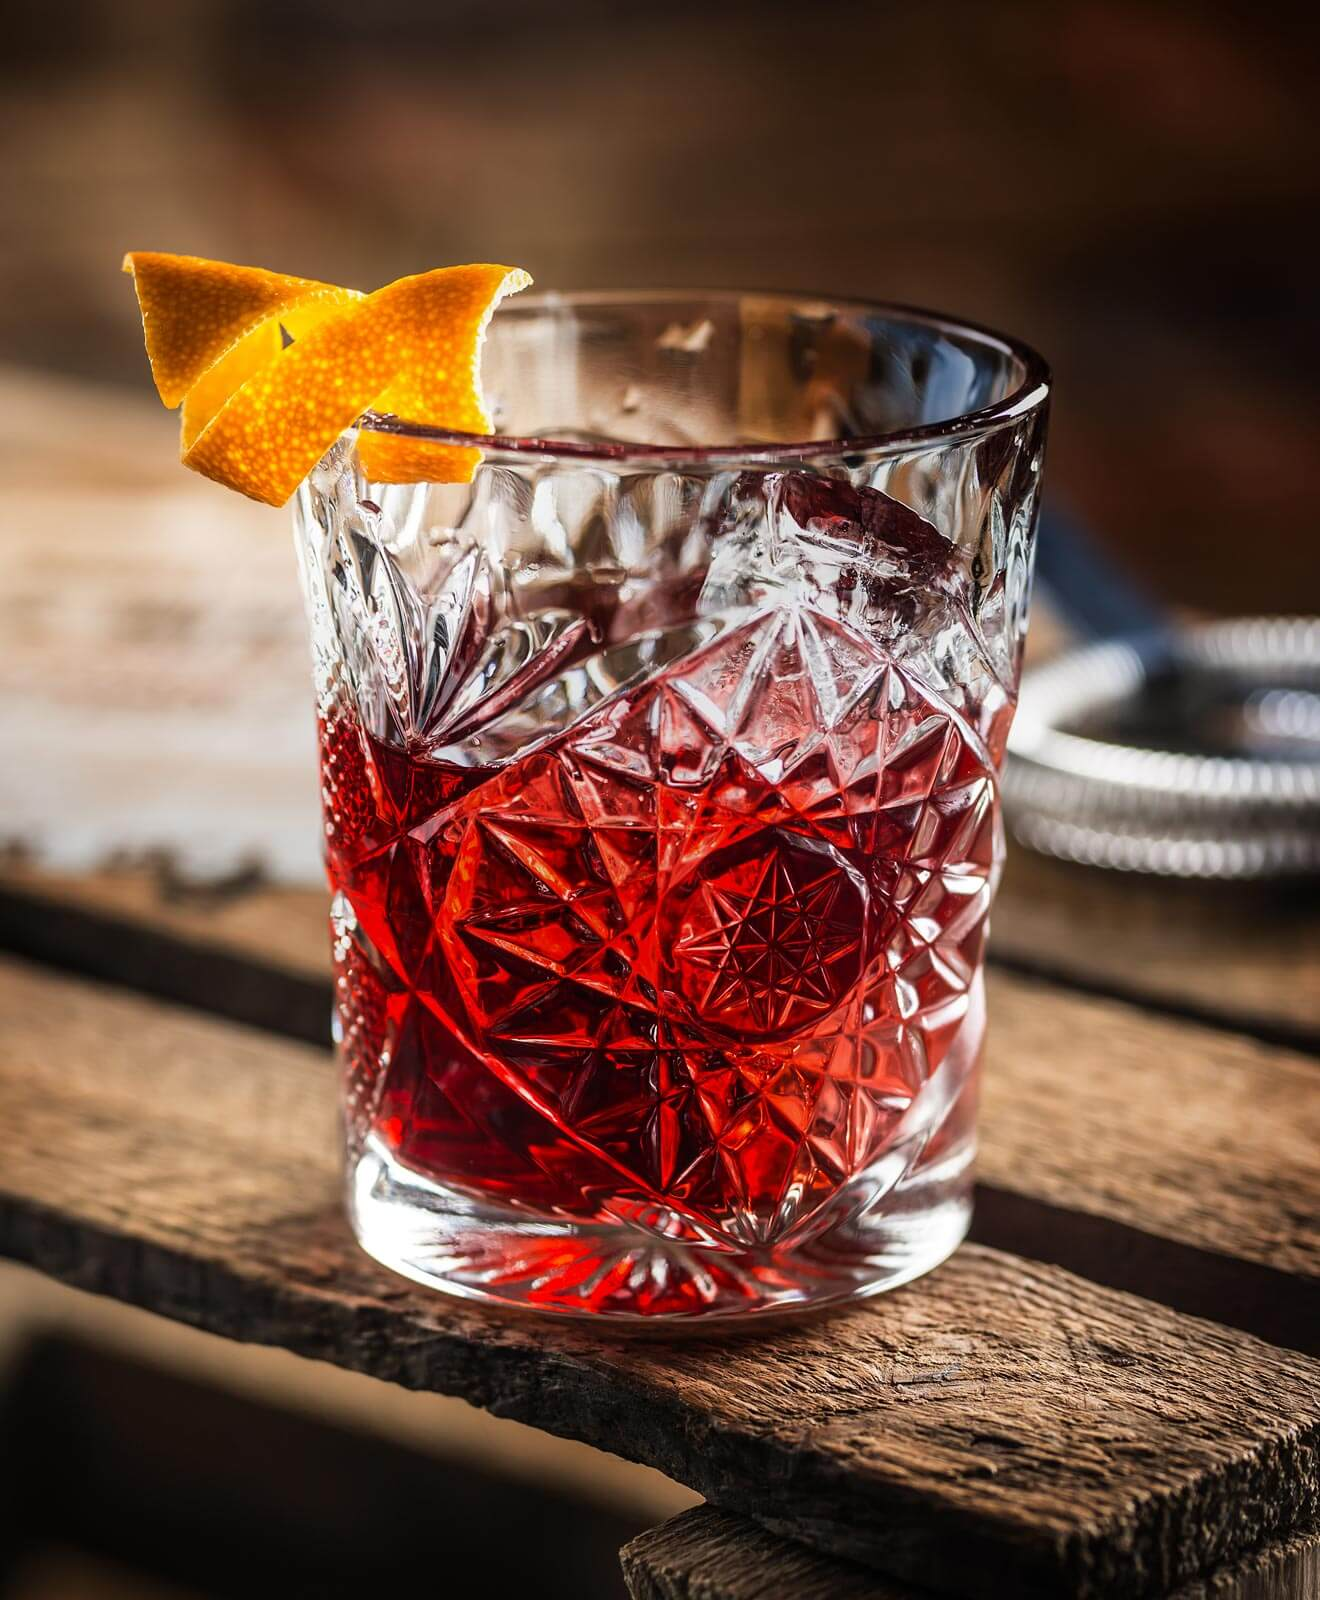 The Perfect Negroni, cocktail with garnish, wooden table